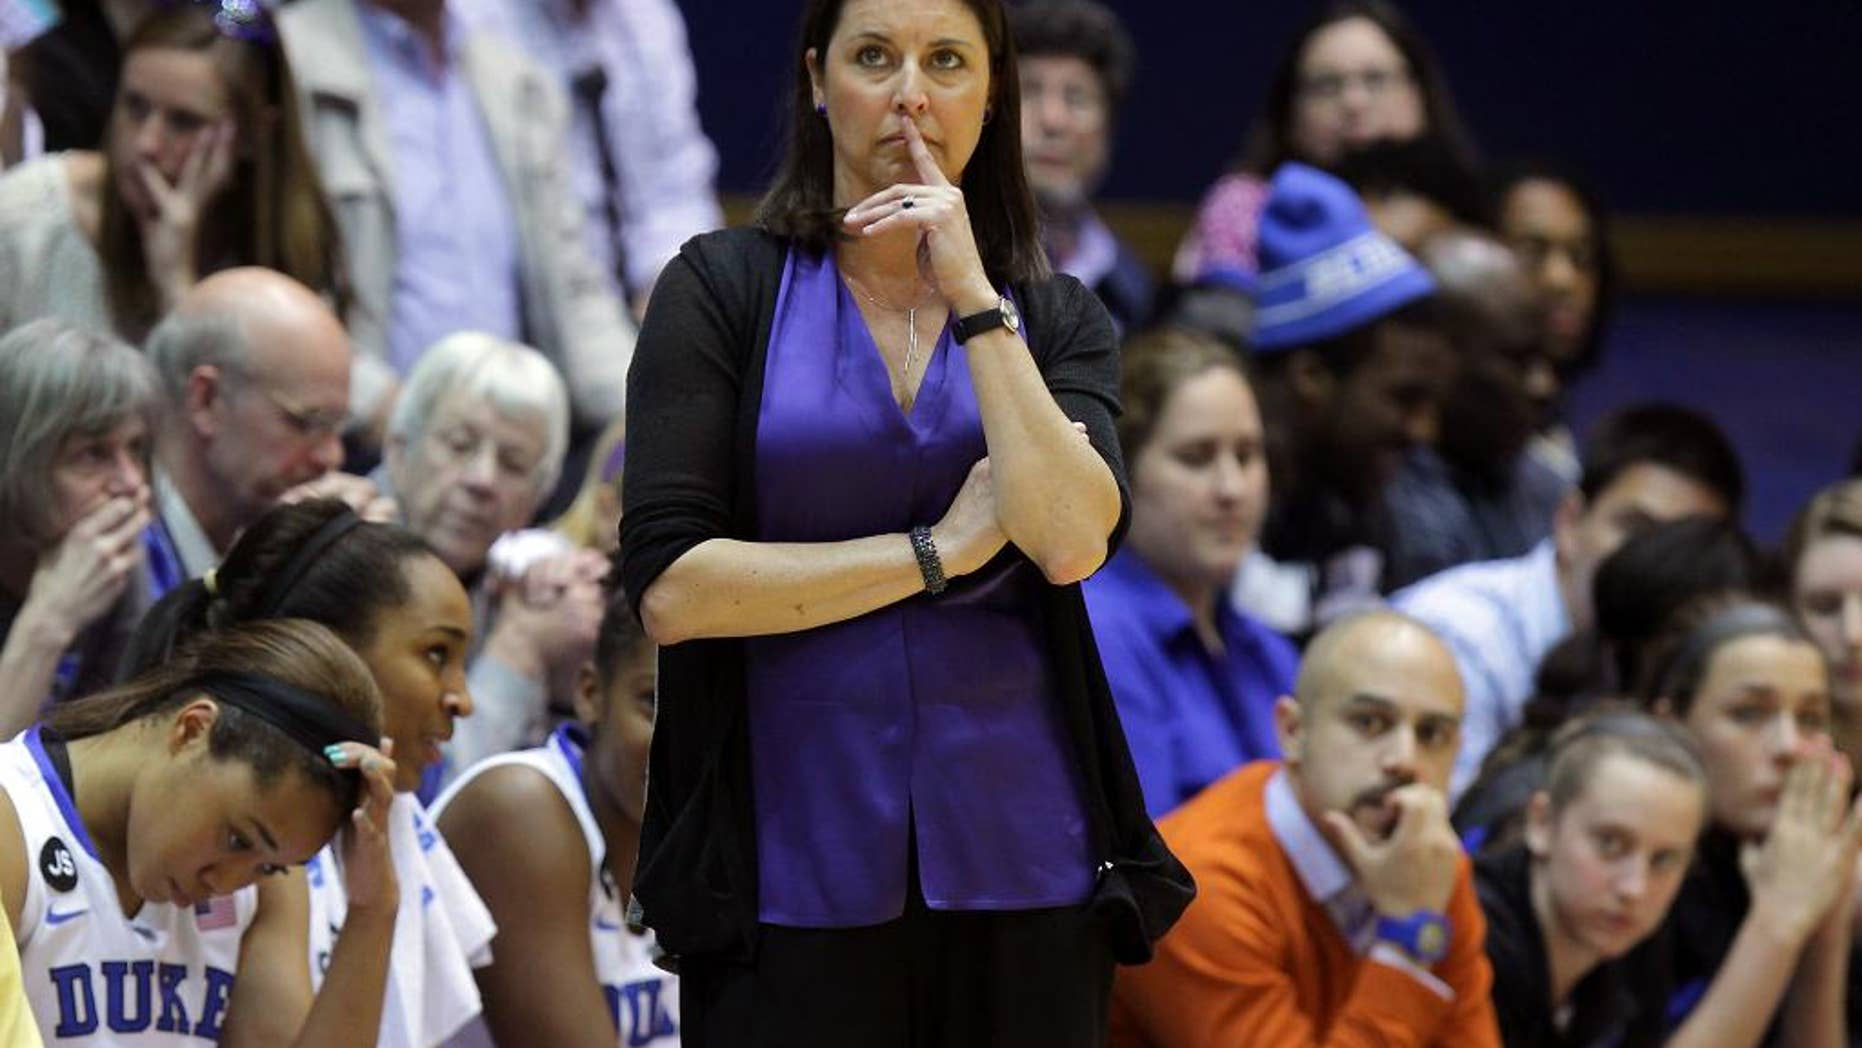 Duke head women's basketball coach Joanne P. McCallie watches game action late in the second half of Duke's 74-65 loss to DePaul in their second-round game in the NCAA basketball tournament in Durham, N.C., Monday, March 24, 2014.  (AP Photo/Ted Richardson)